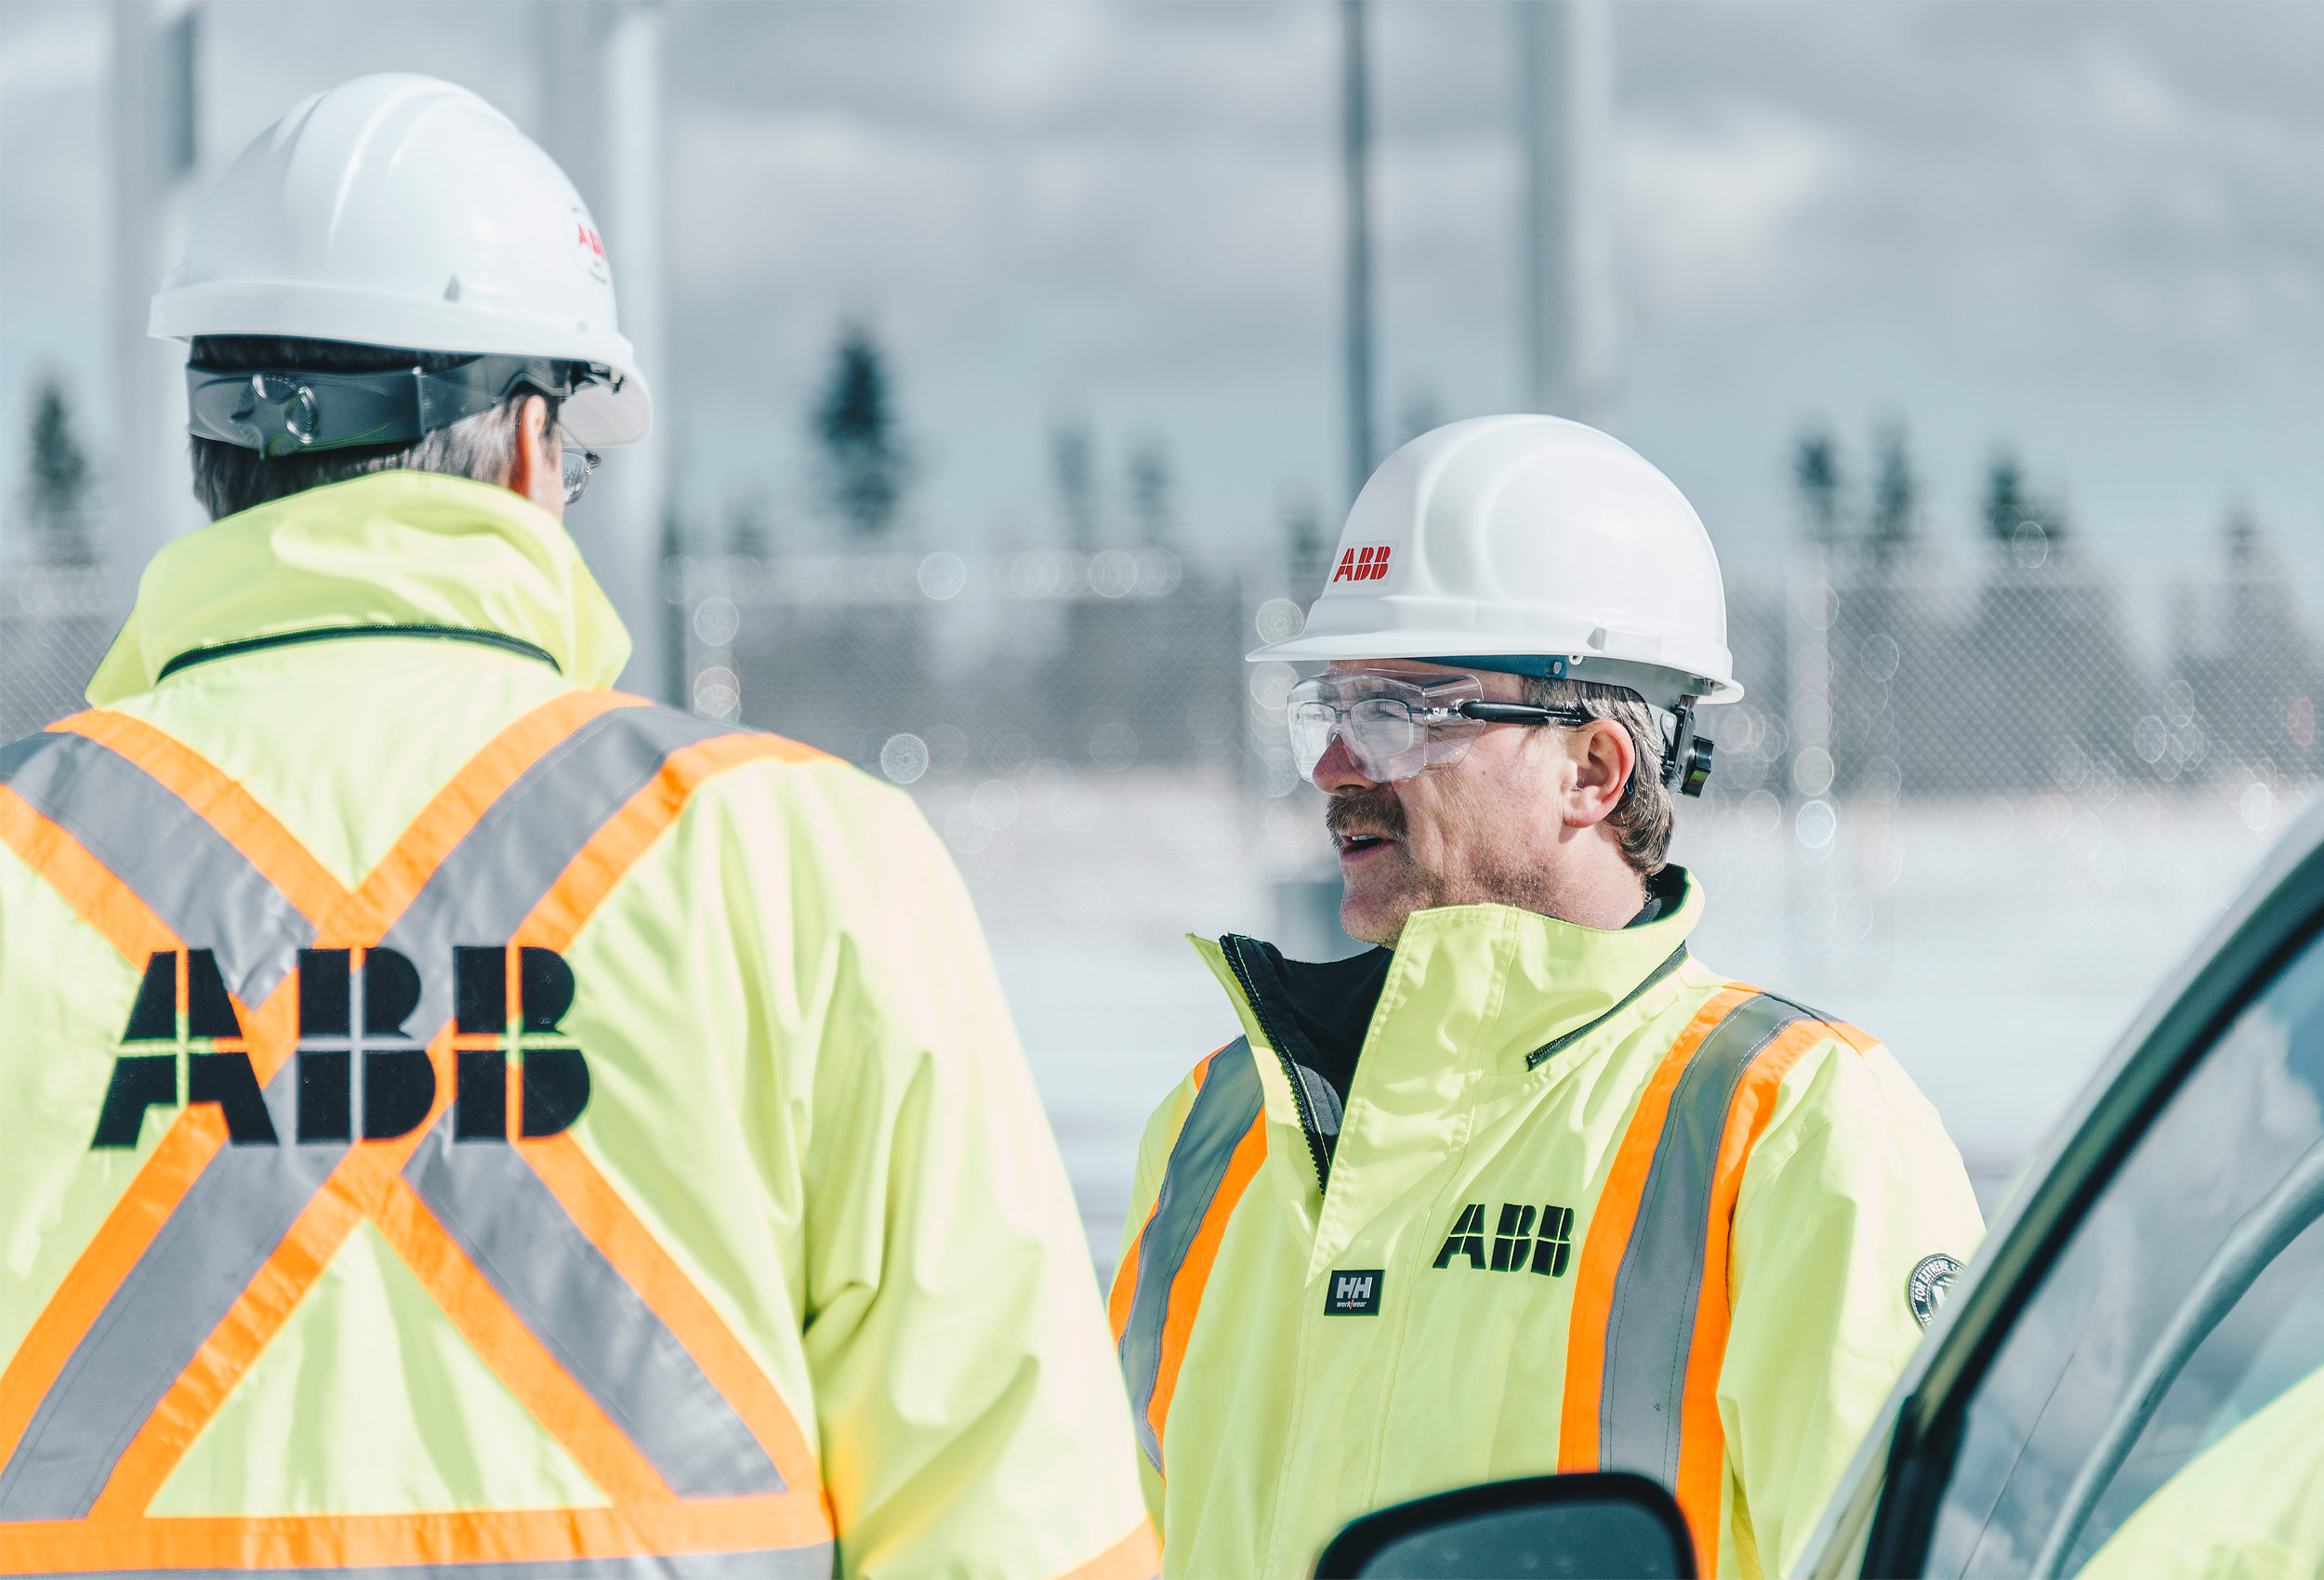 ABB Workers at Maritime Link energy project in Newfoundland Canada by corporate industrial photographer Kristopher Grunert.